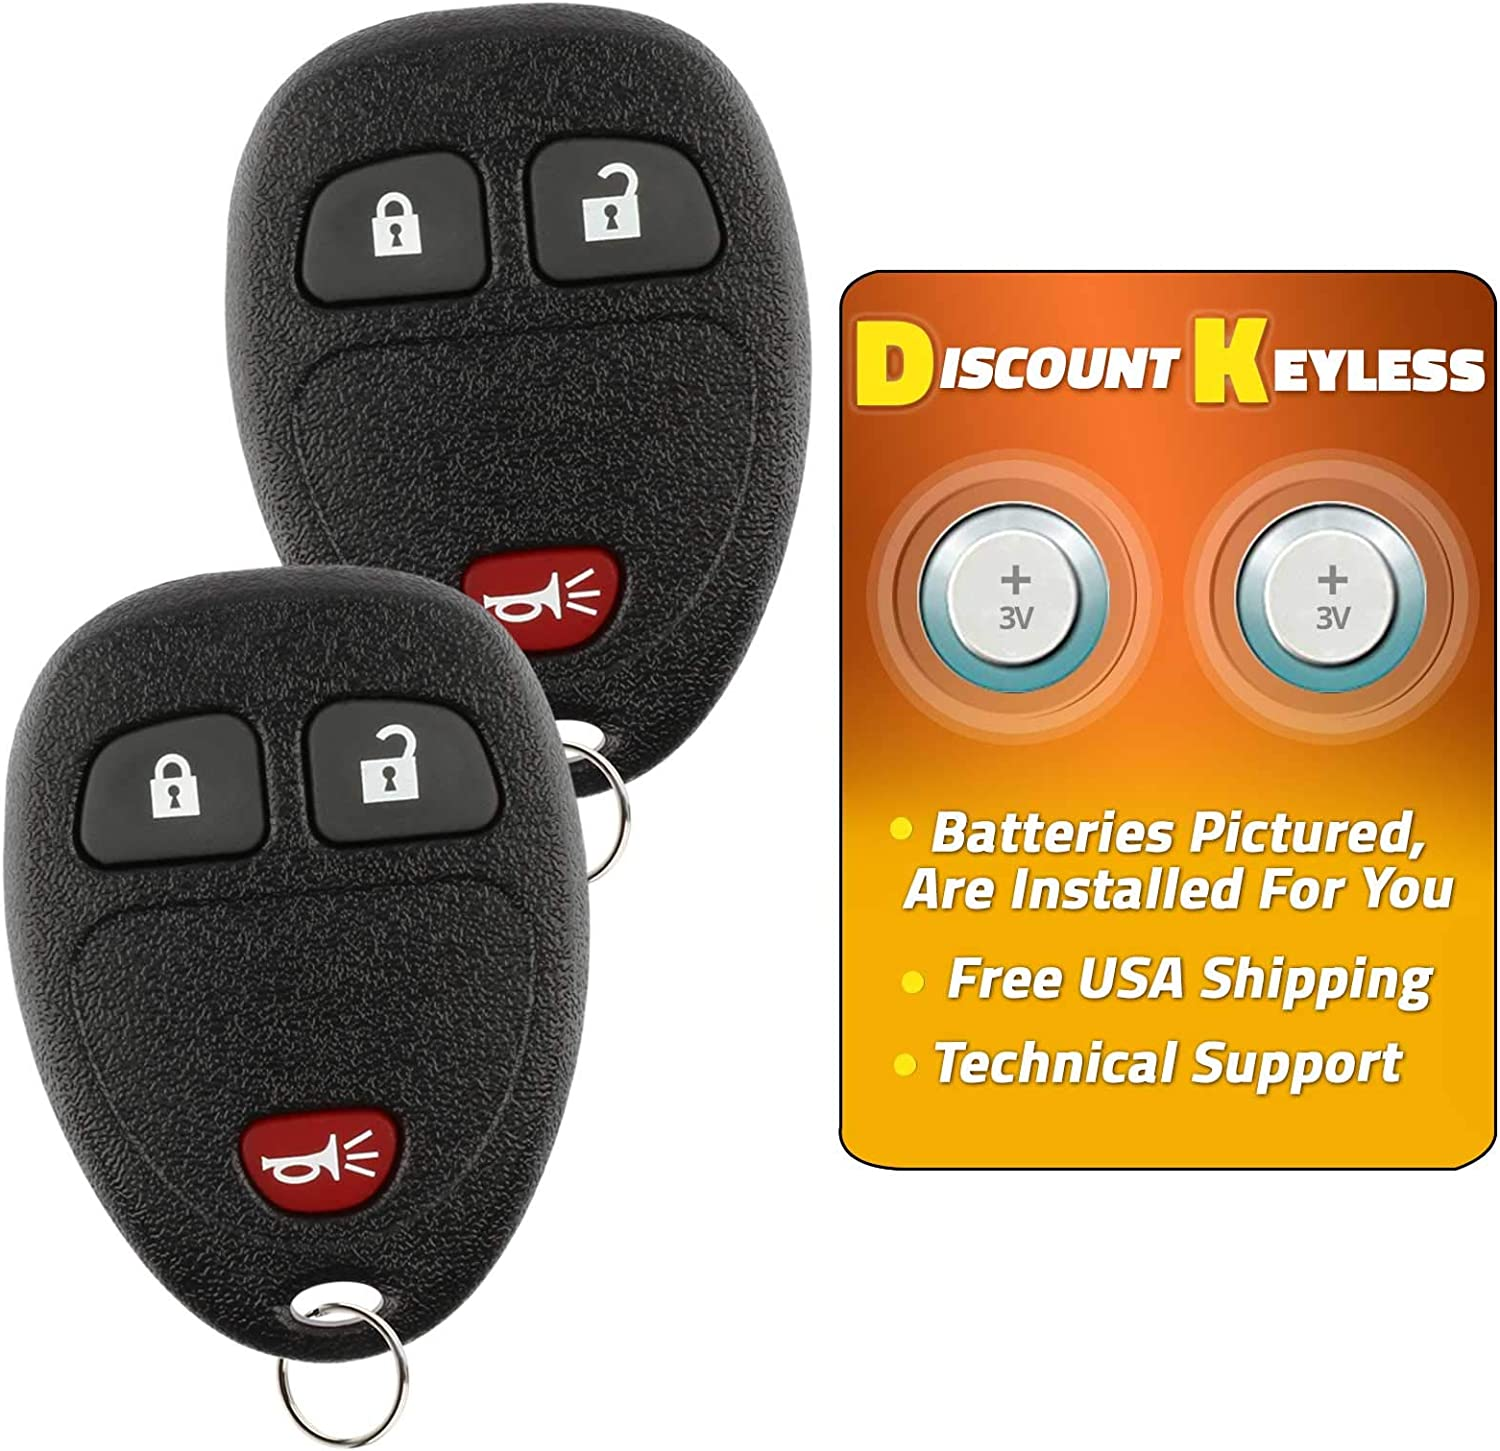 15752330 Discount Keyless Replacement Key Fob Car Remote Compatible with KOBLEAR1XT